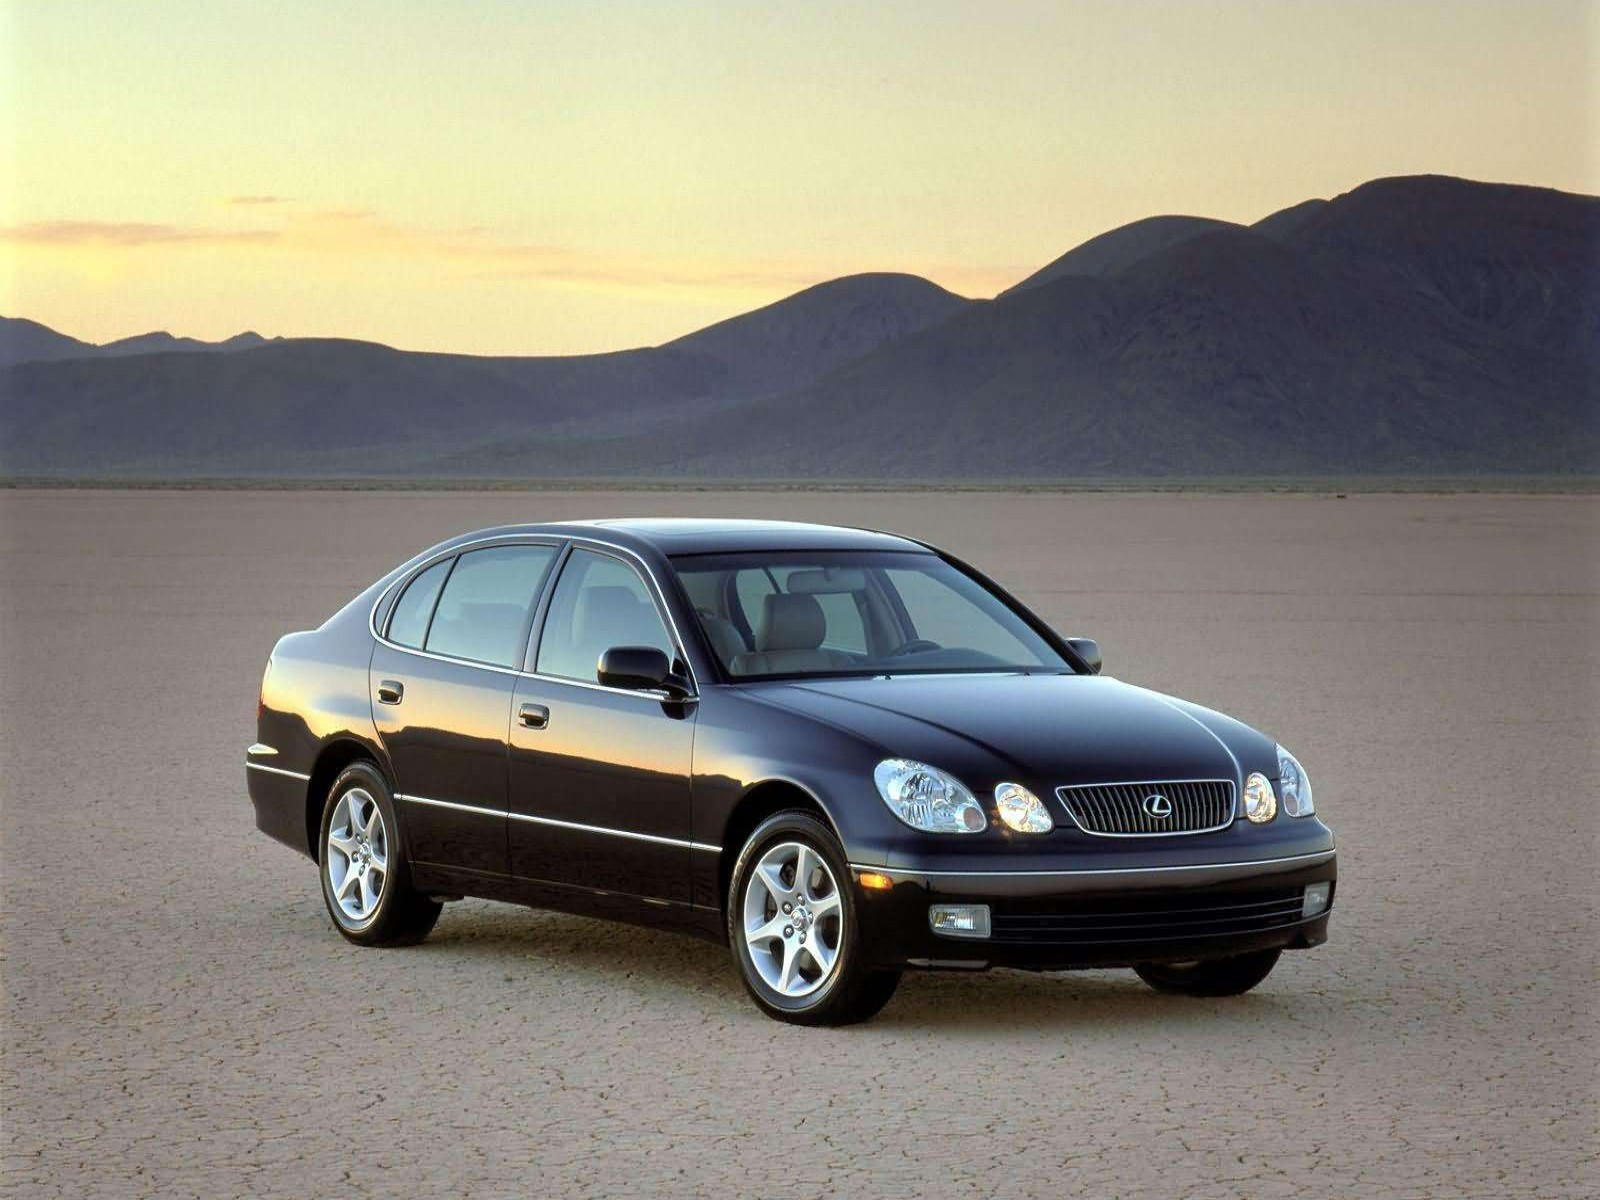 Lexus gs 2004 photo - 4